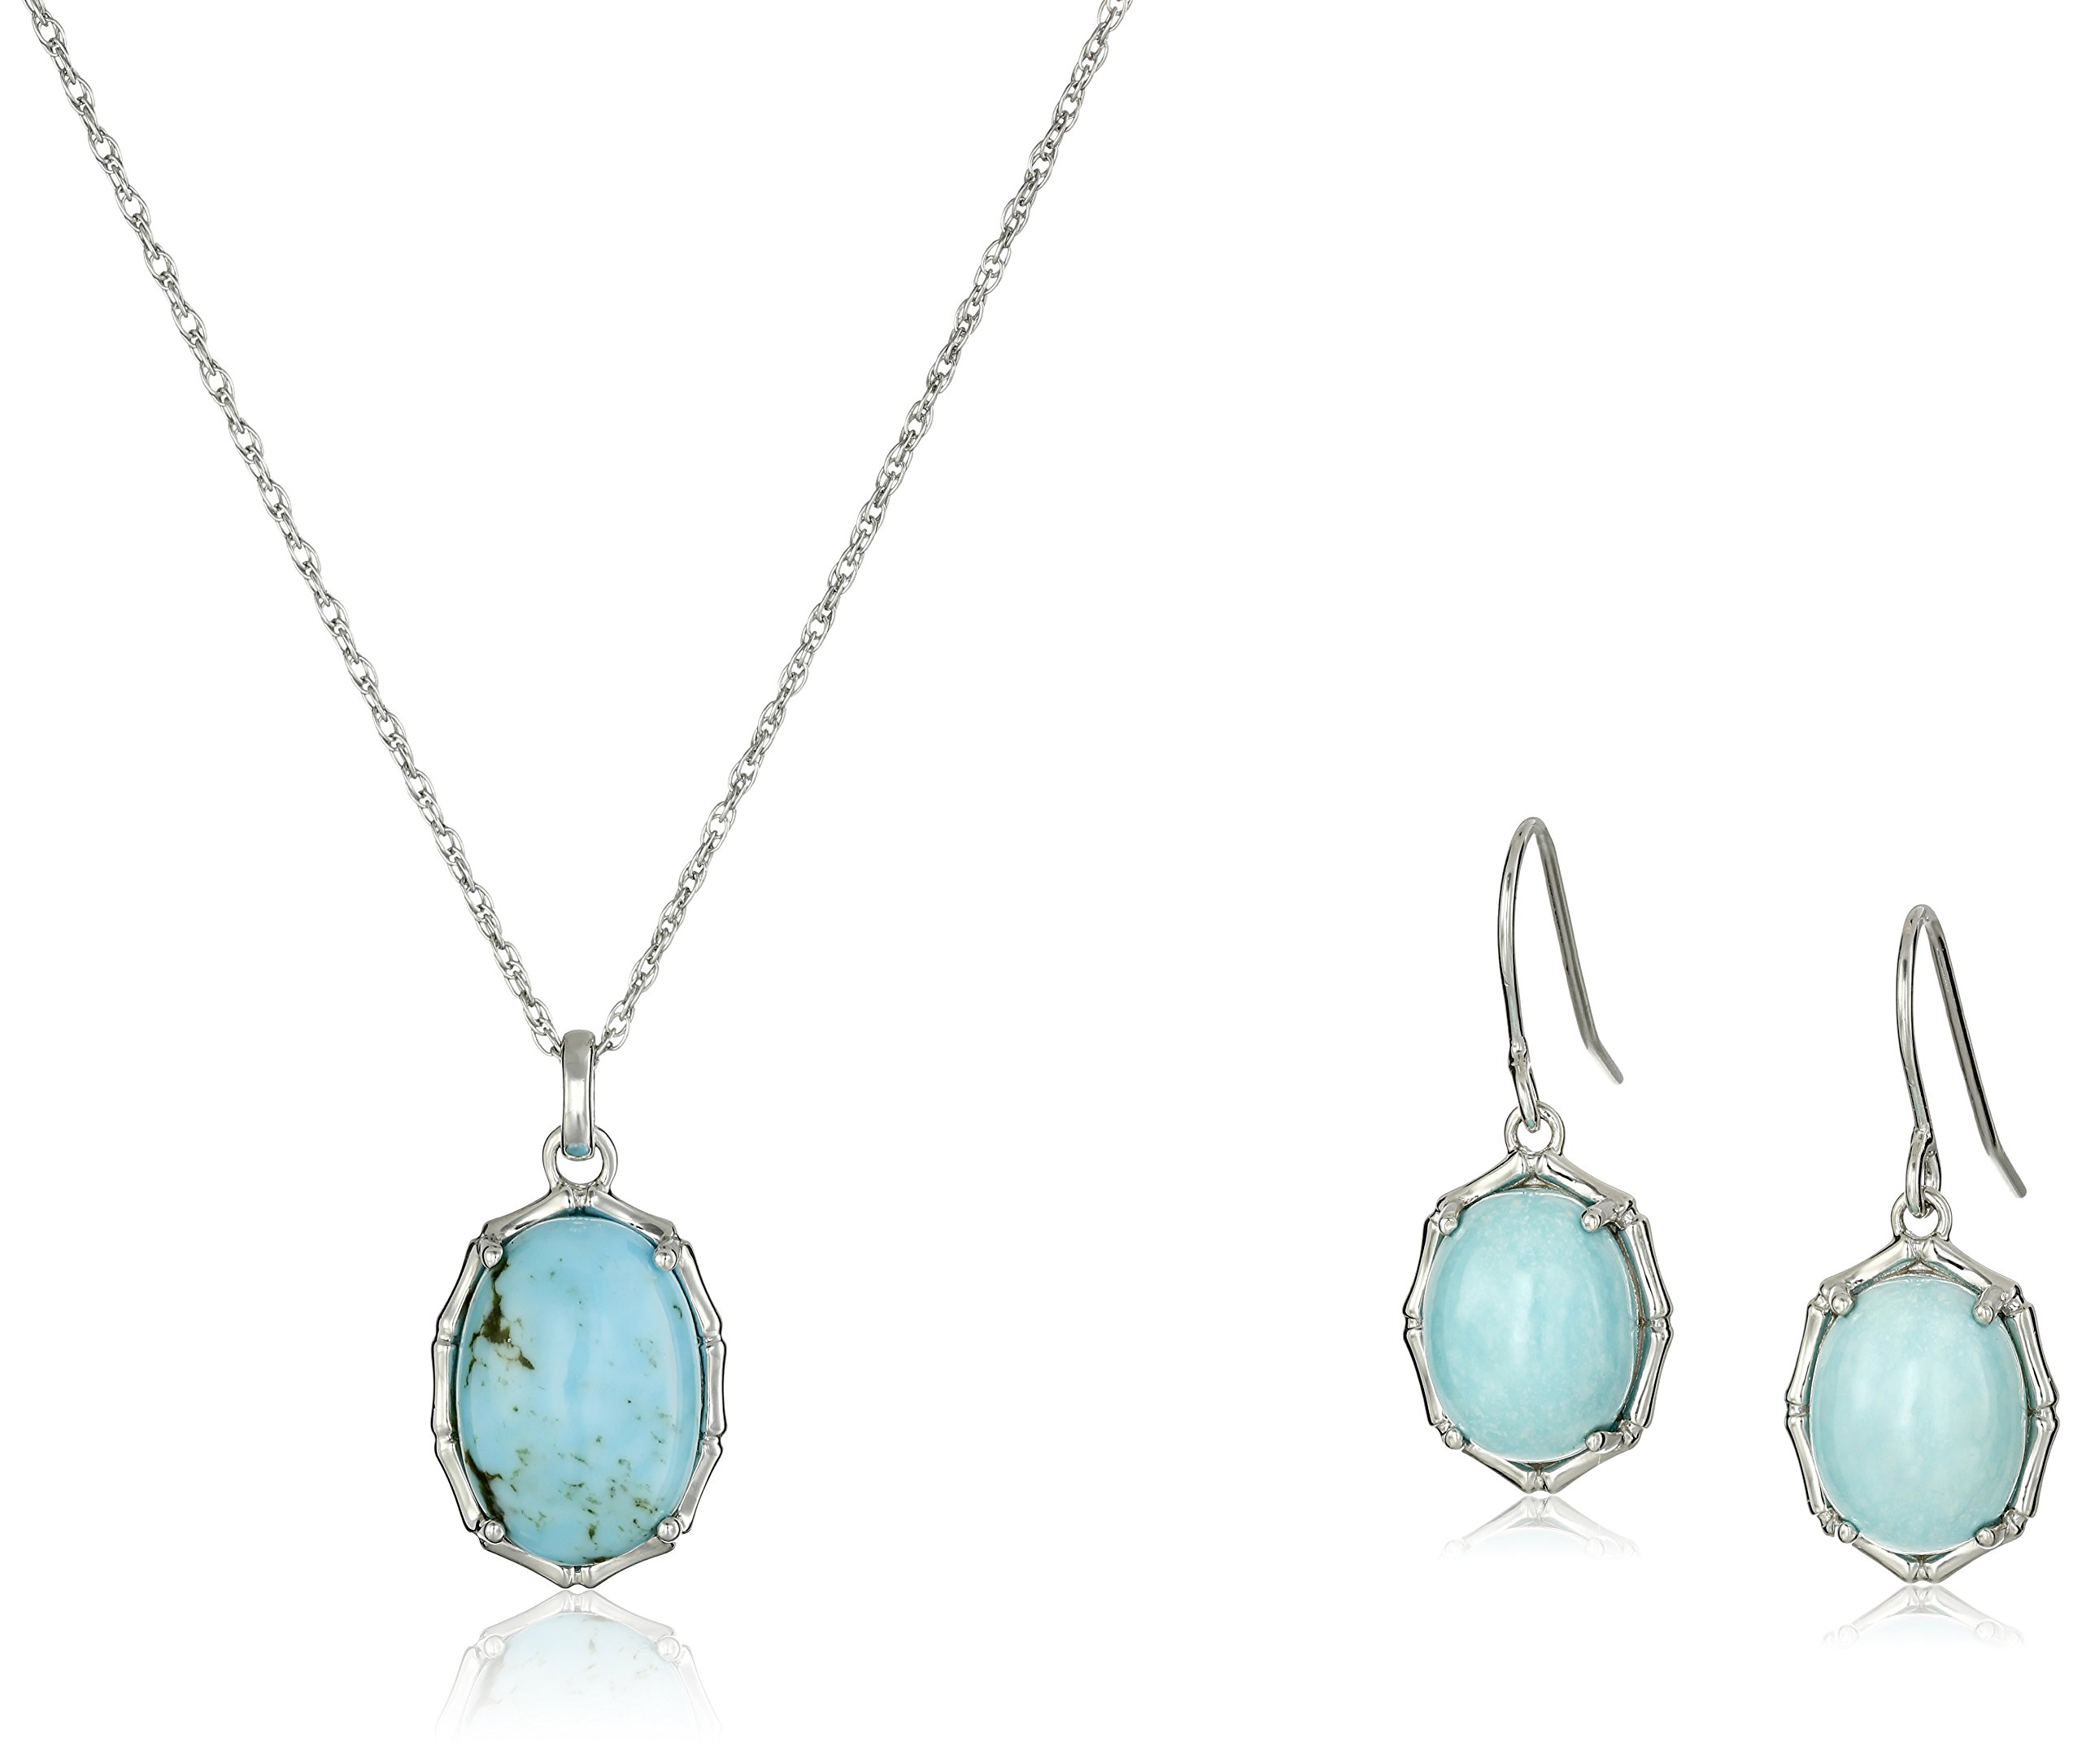 Sterling Silver Turquoise Oval Bamboo Framed Earrings and Pendant Necklace Jewelry Set, 18''